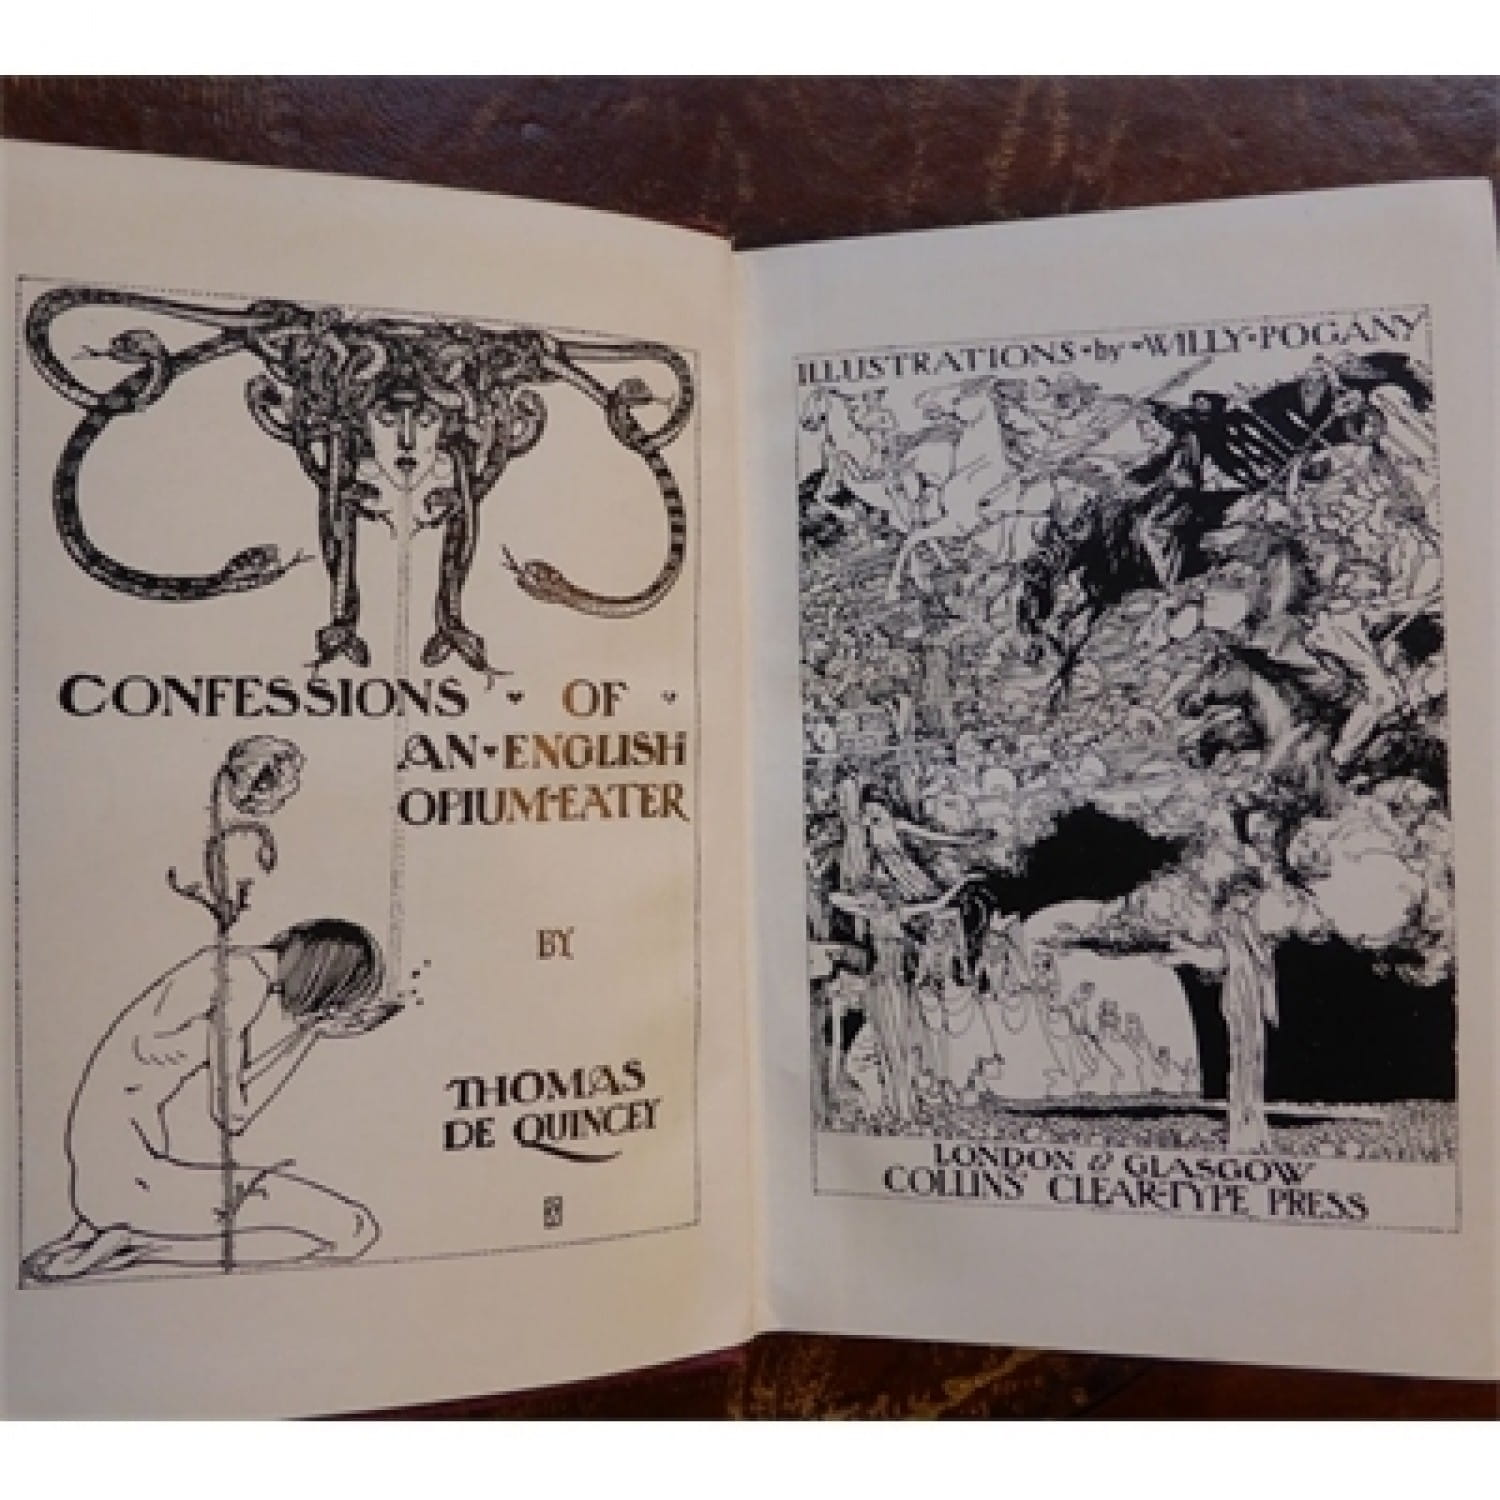 An illustrated copy of his 'Confessions', published by Collins of Glasgow